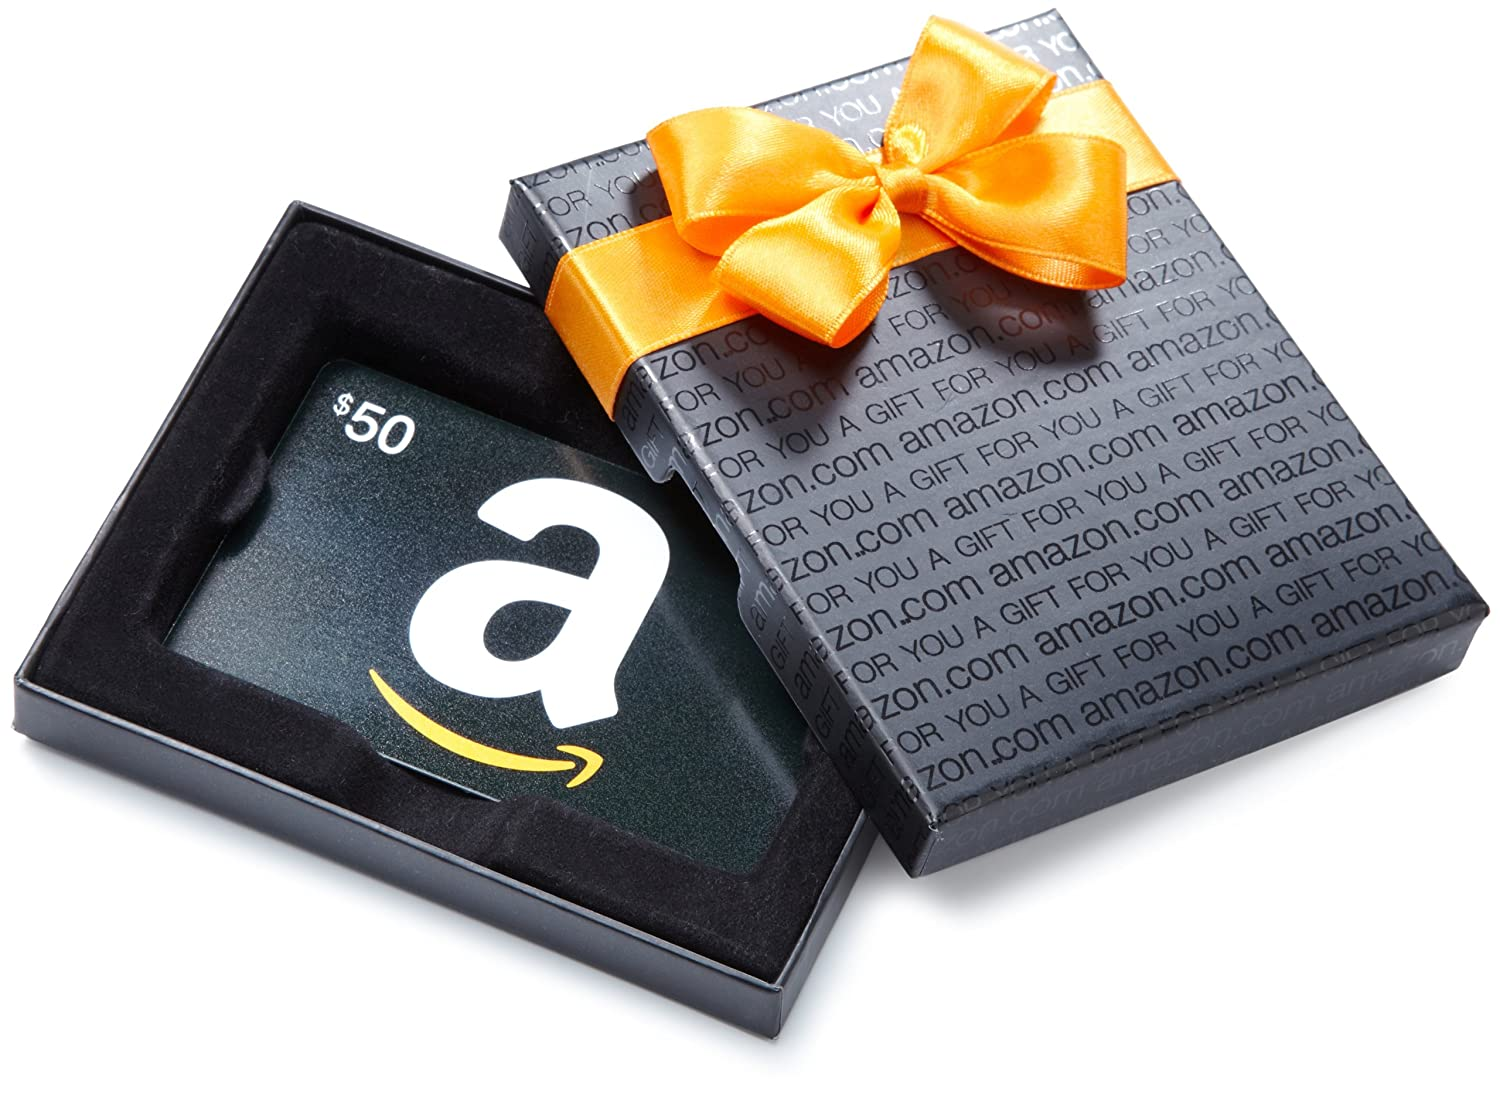 Amazon.com $50 Gift Card in a Black Gift Box (Classic Black Card Design) giftboxmobile